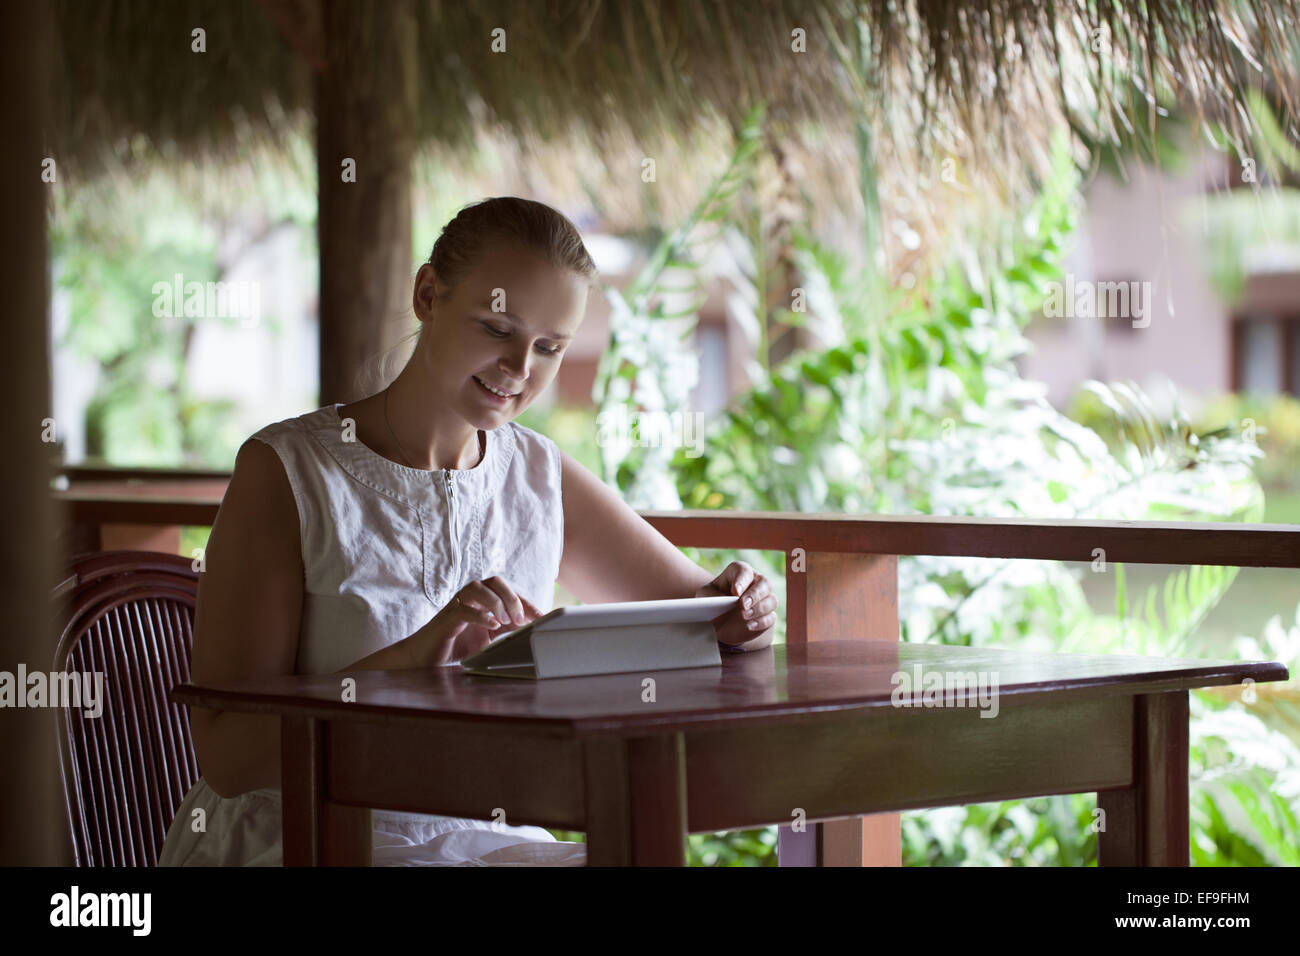 Smiling woman using tablet computer in cafe during vacation - Stock Image